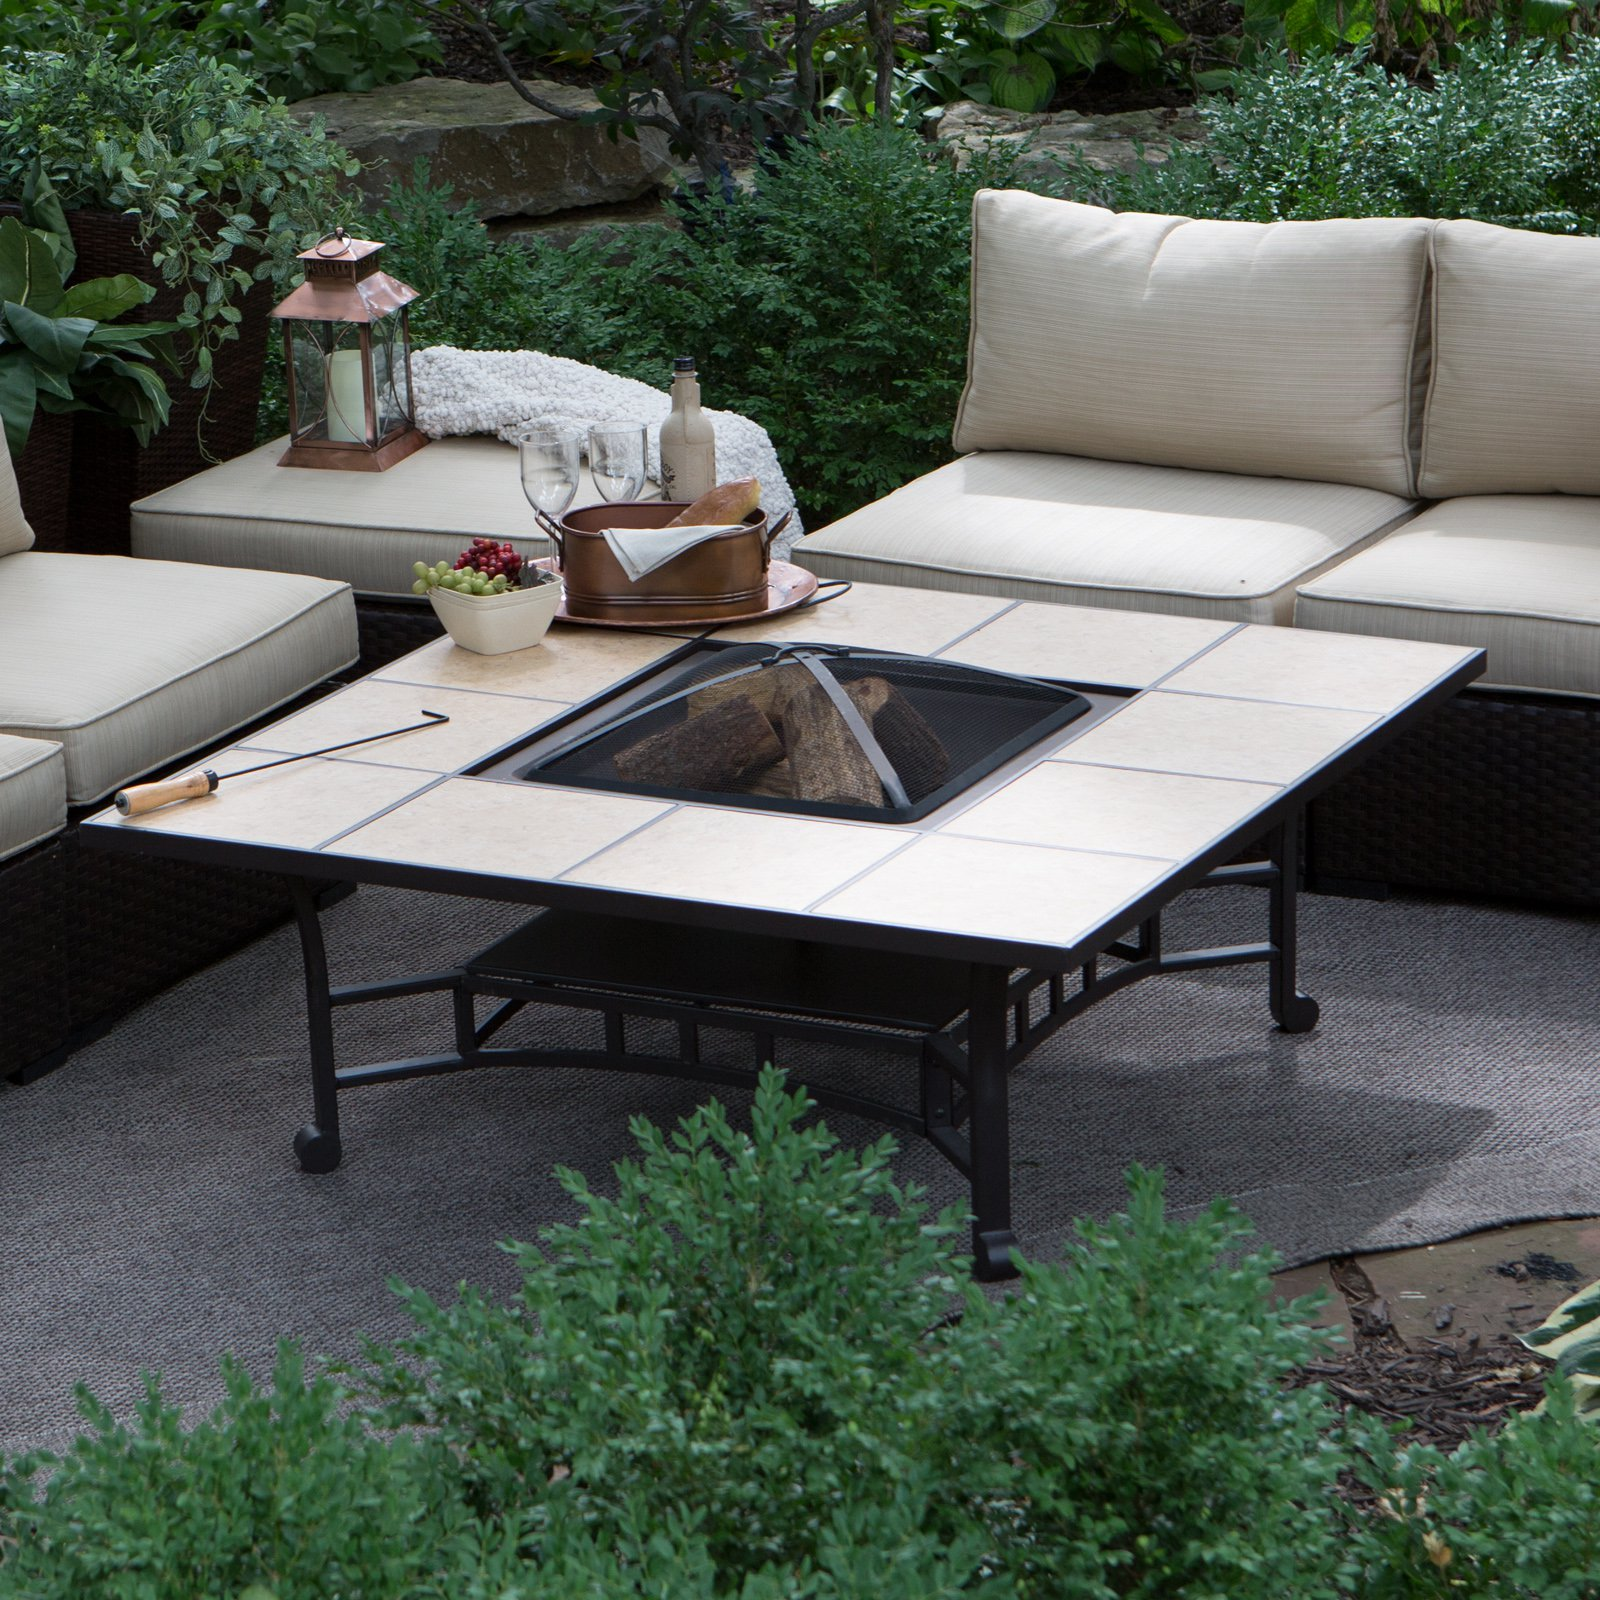 Red Ember Wheatland 50 in Outdoor Square Tile Convertible Fire